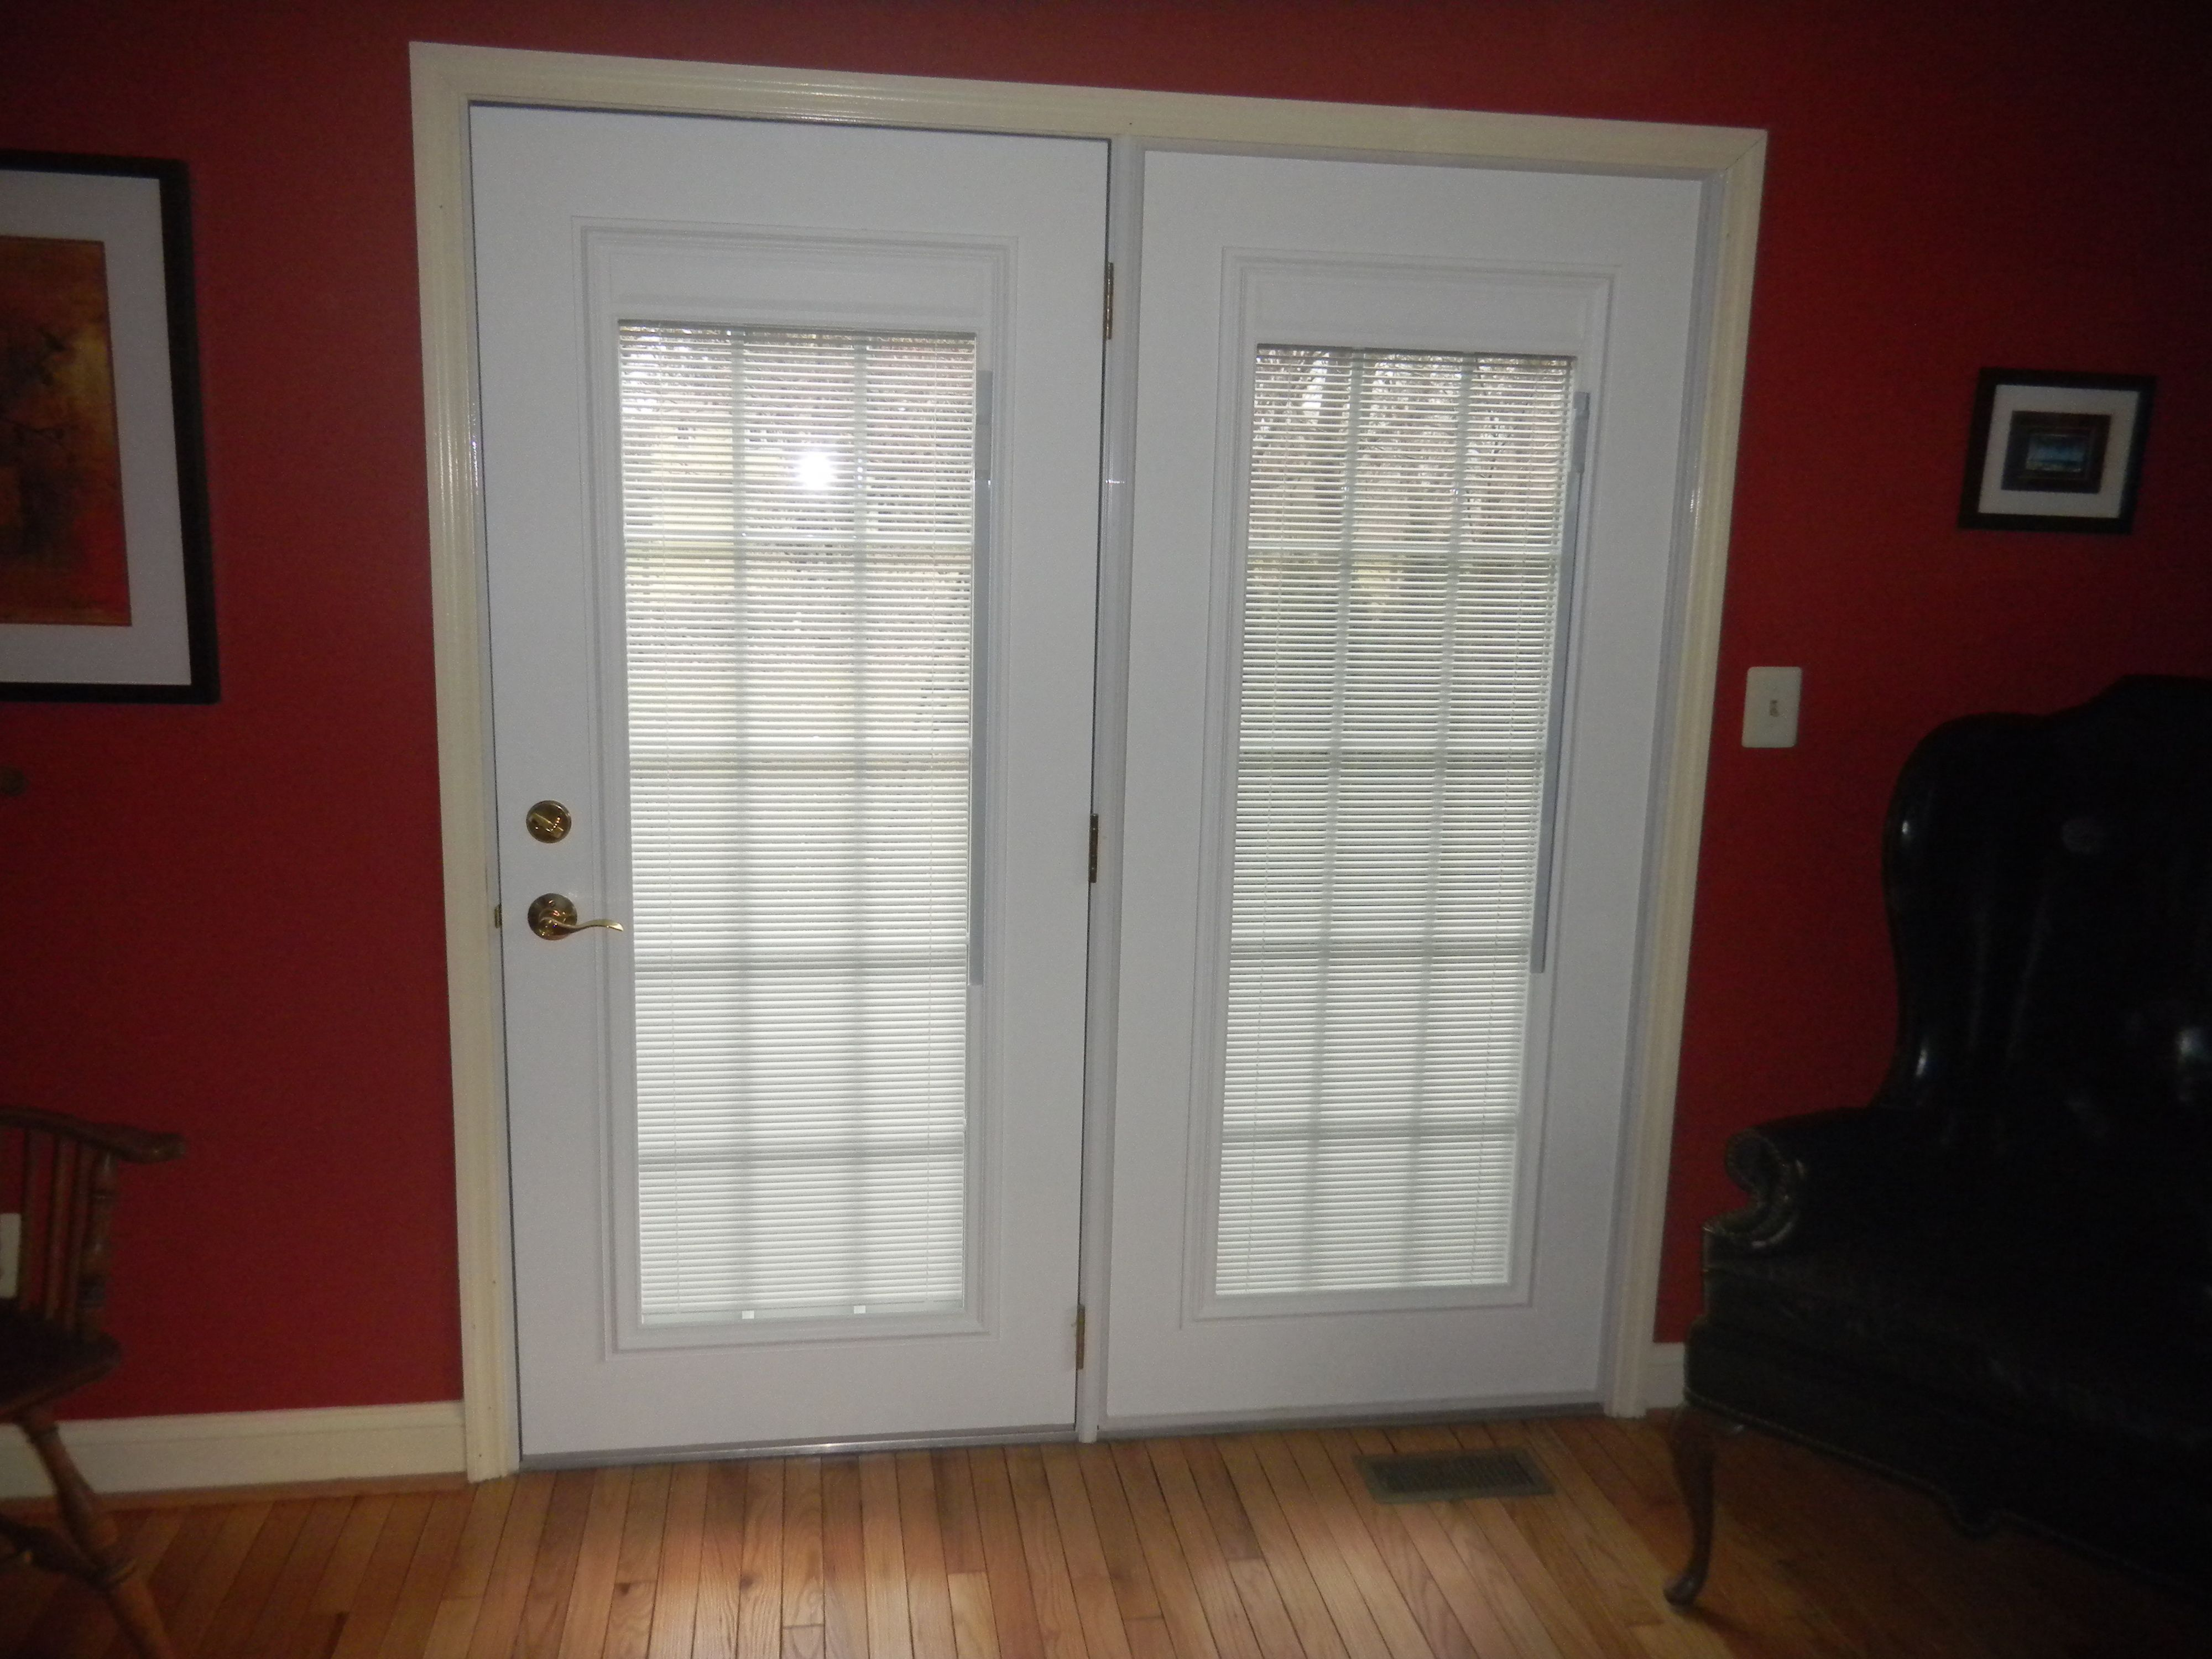 Steel entry doors with blinds between the glass panes with regard to